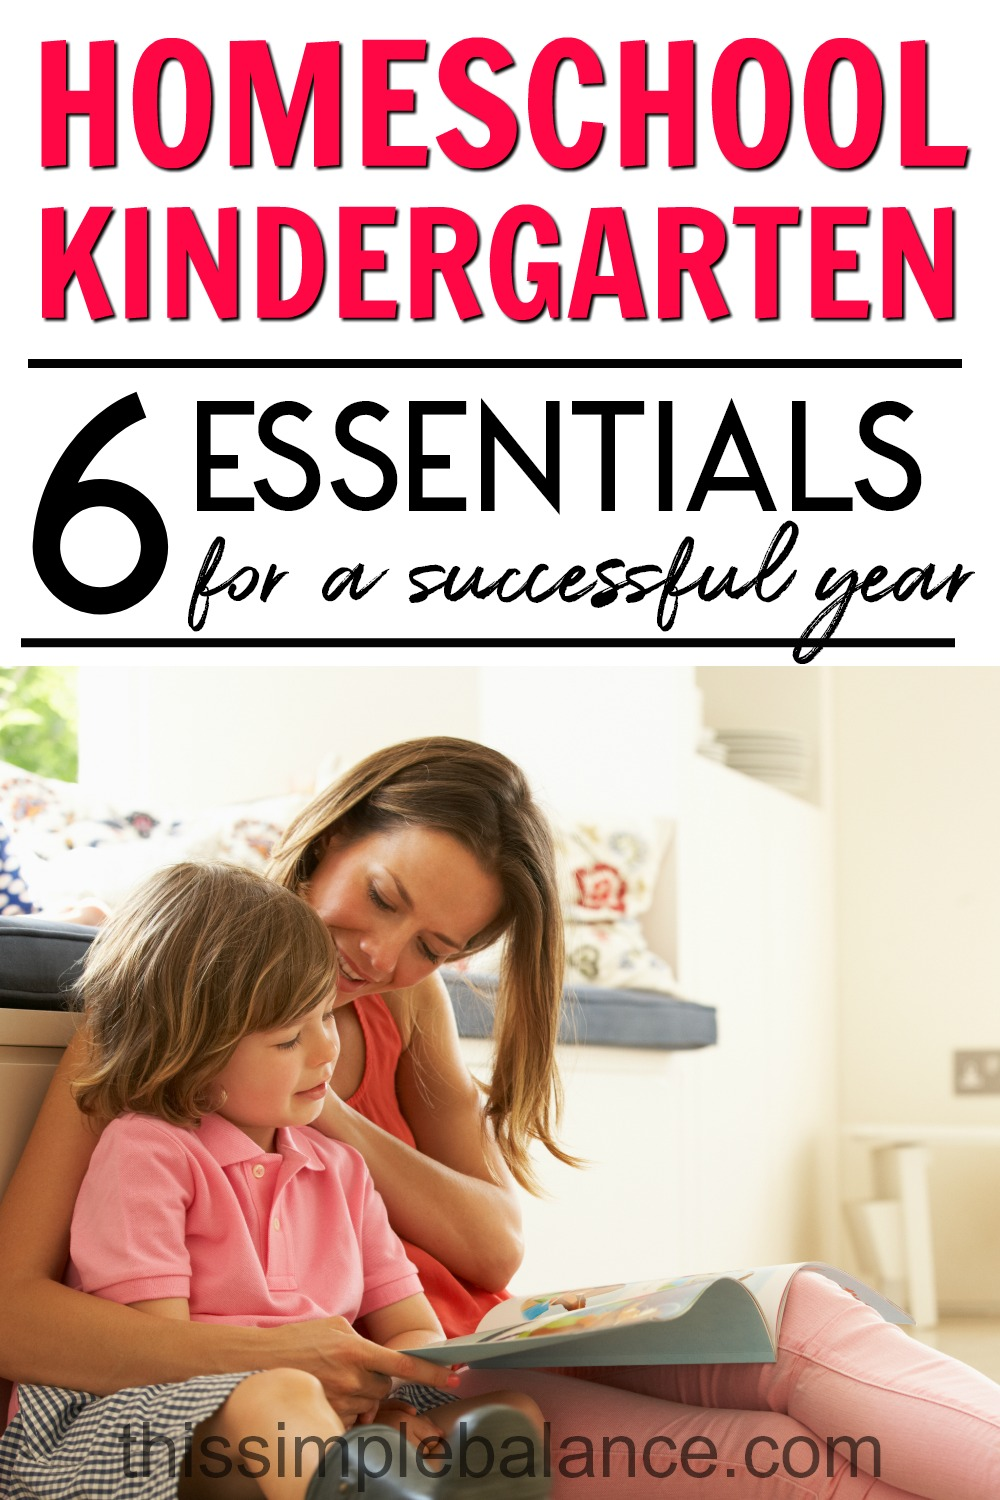 Homeschool Kindergarten with Confidence using these ideas and tips. 6 essential elements plus answers to commonly asked questions about homeschooling kindergarten.